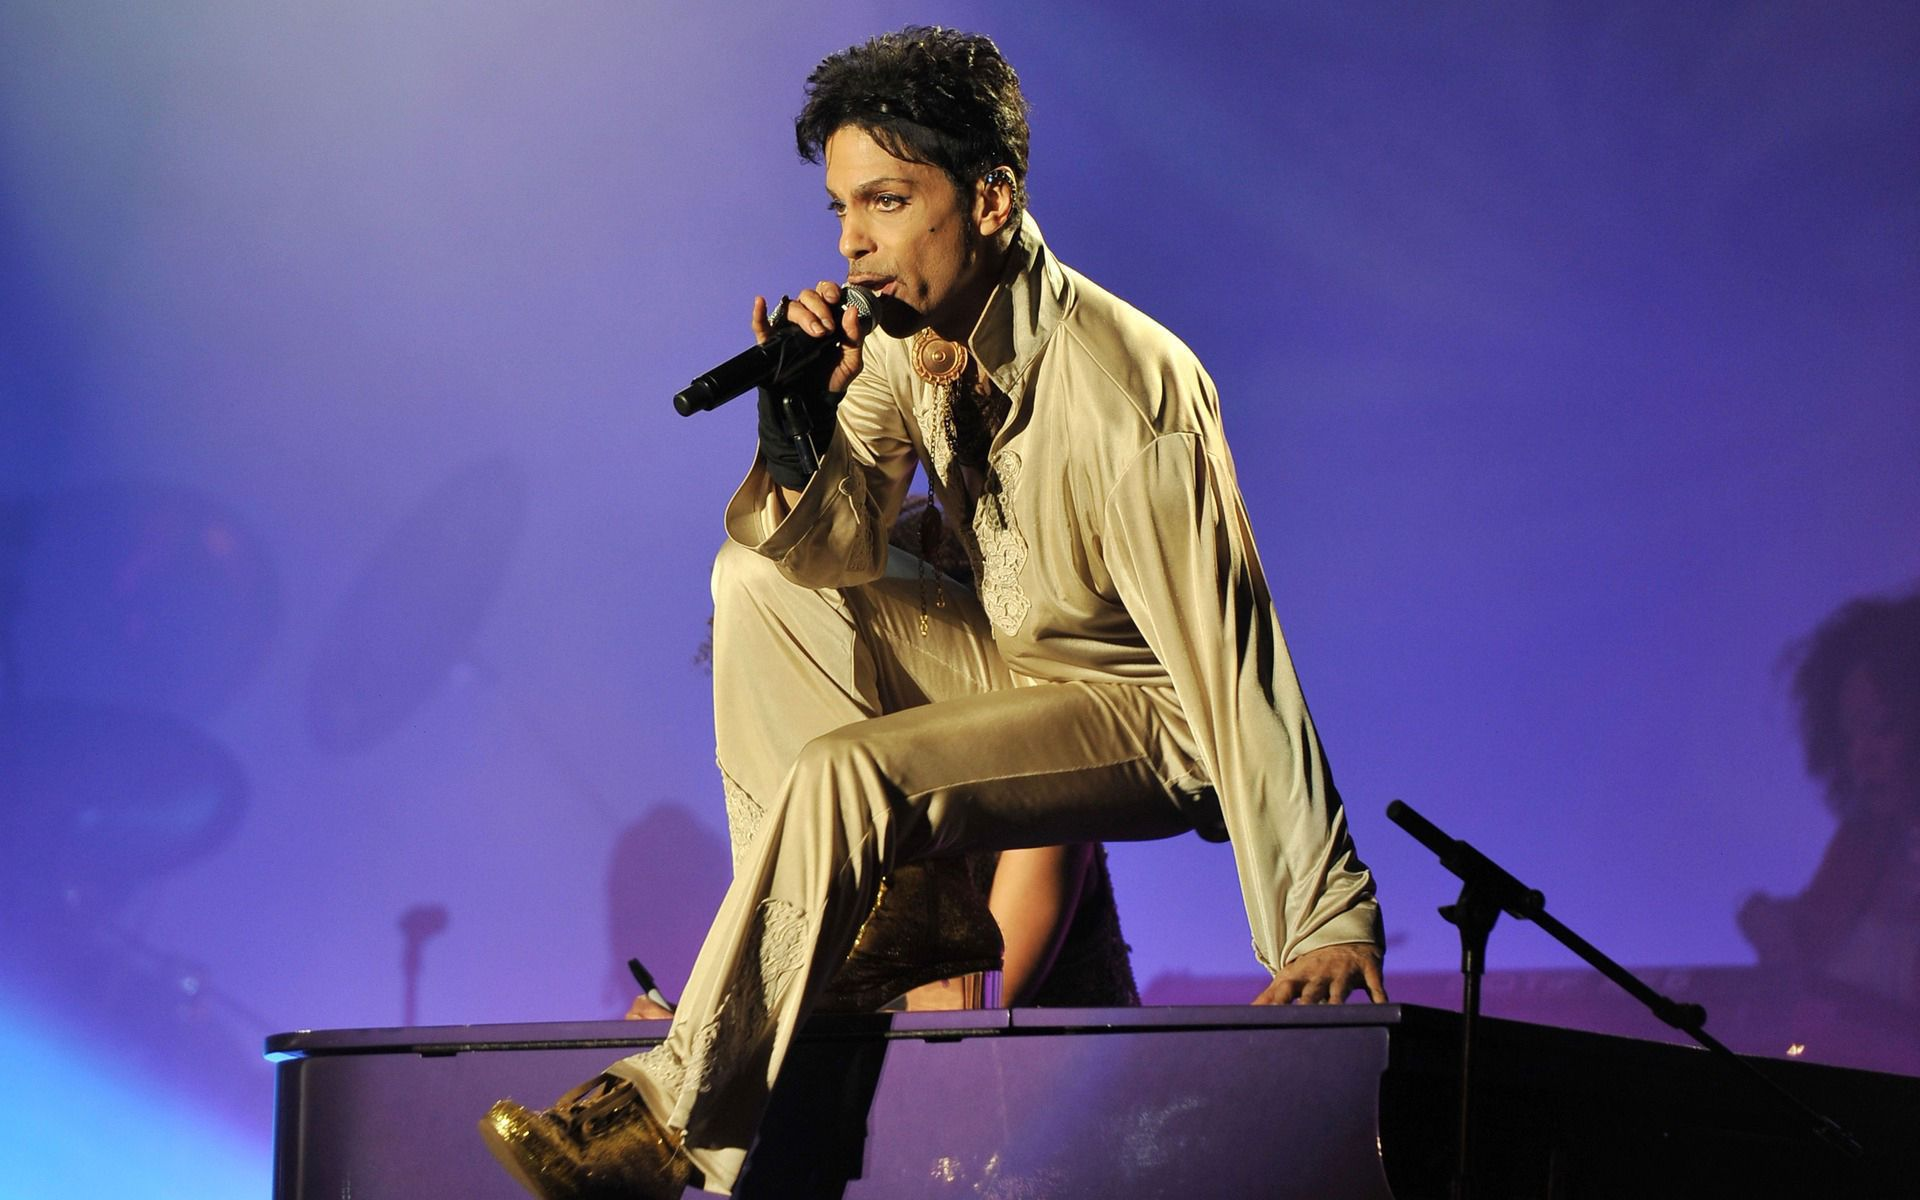 Prince wallpapers backgrounds - Prince wallpaper ...